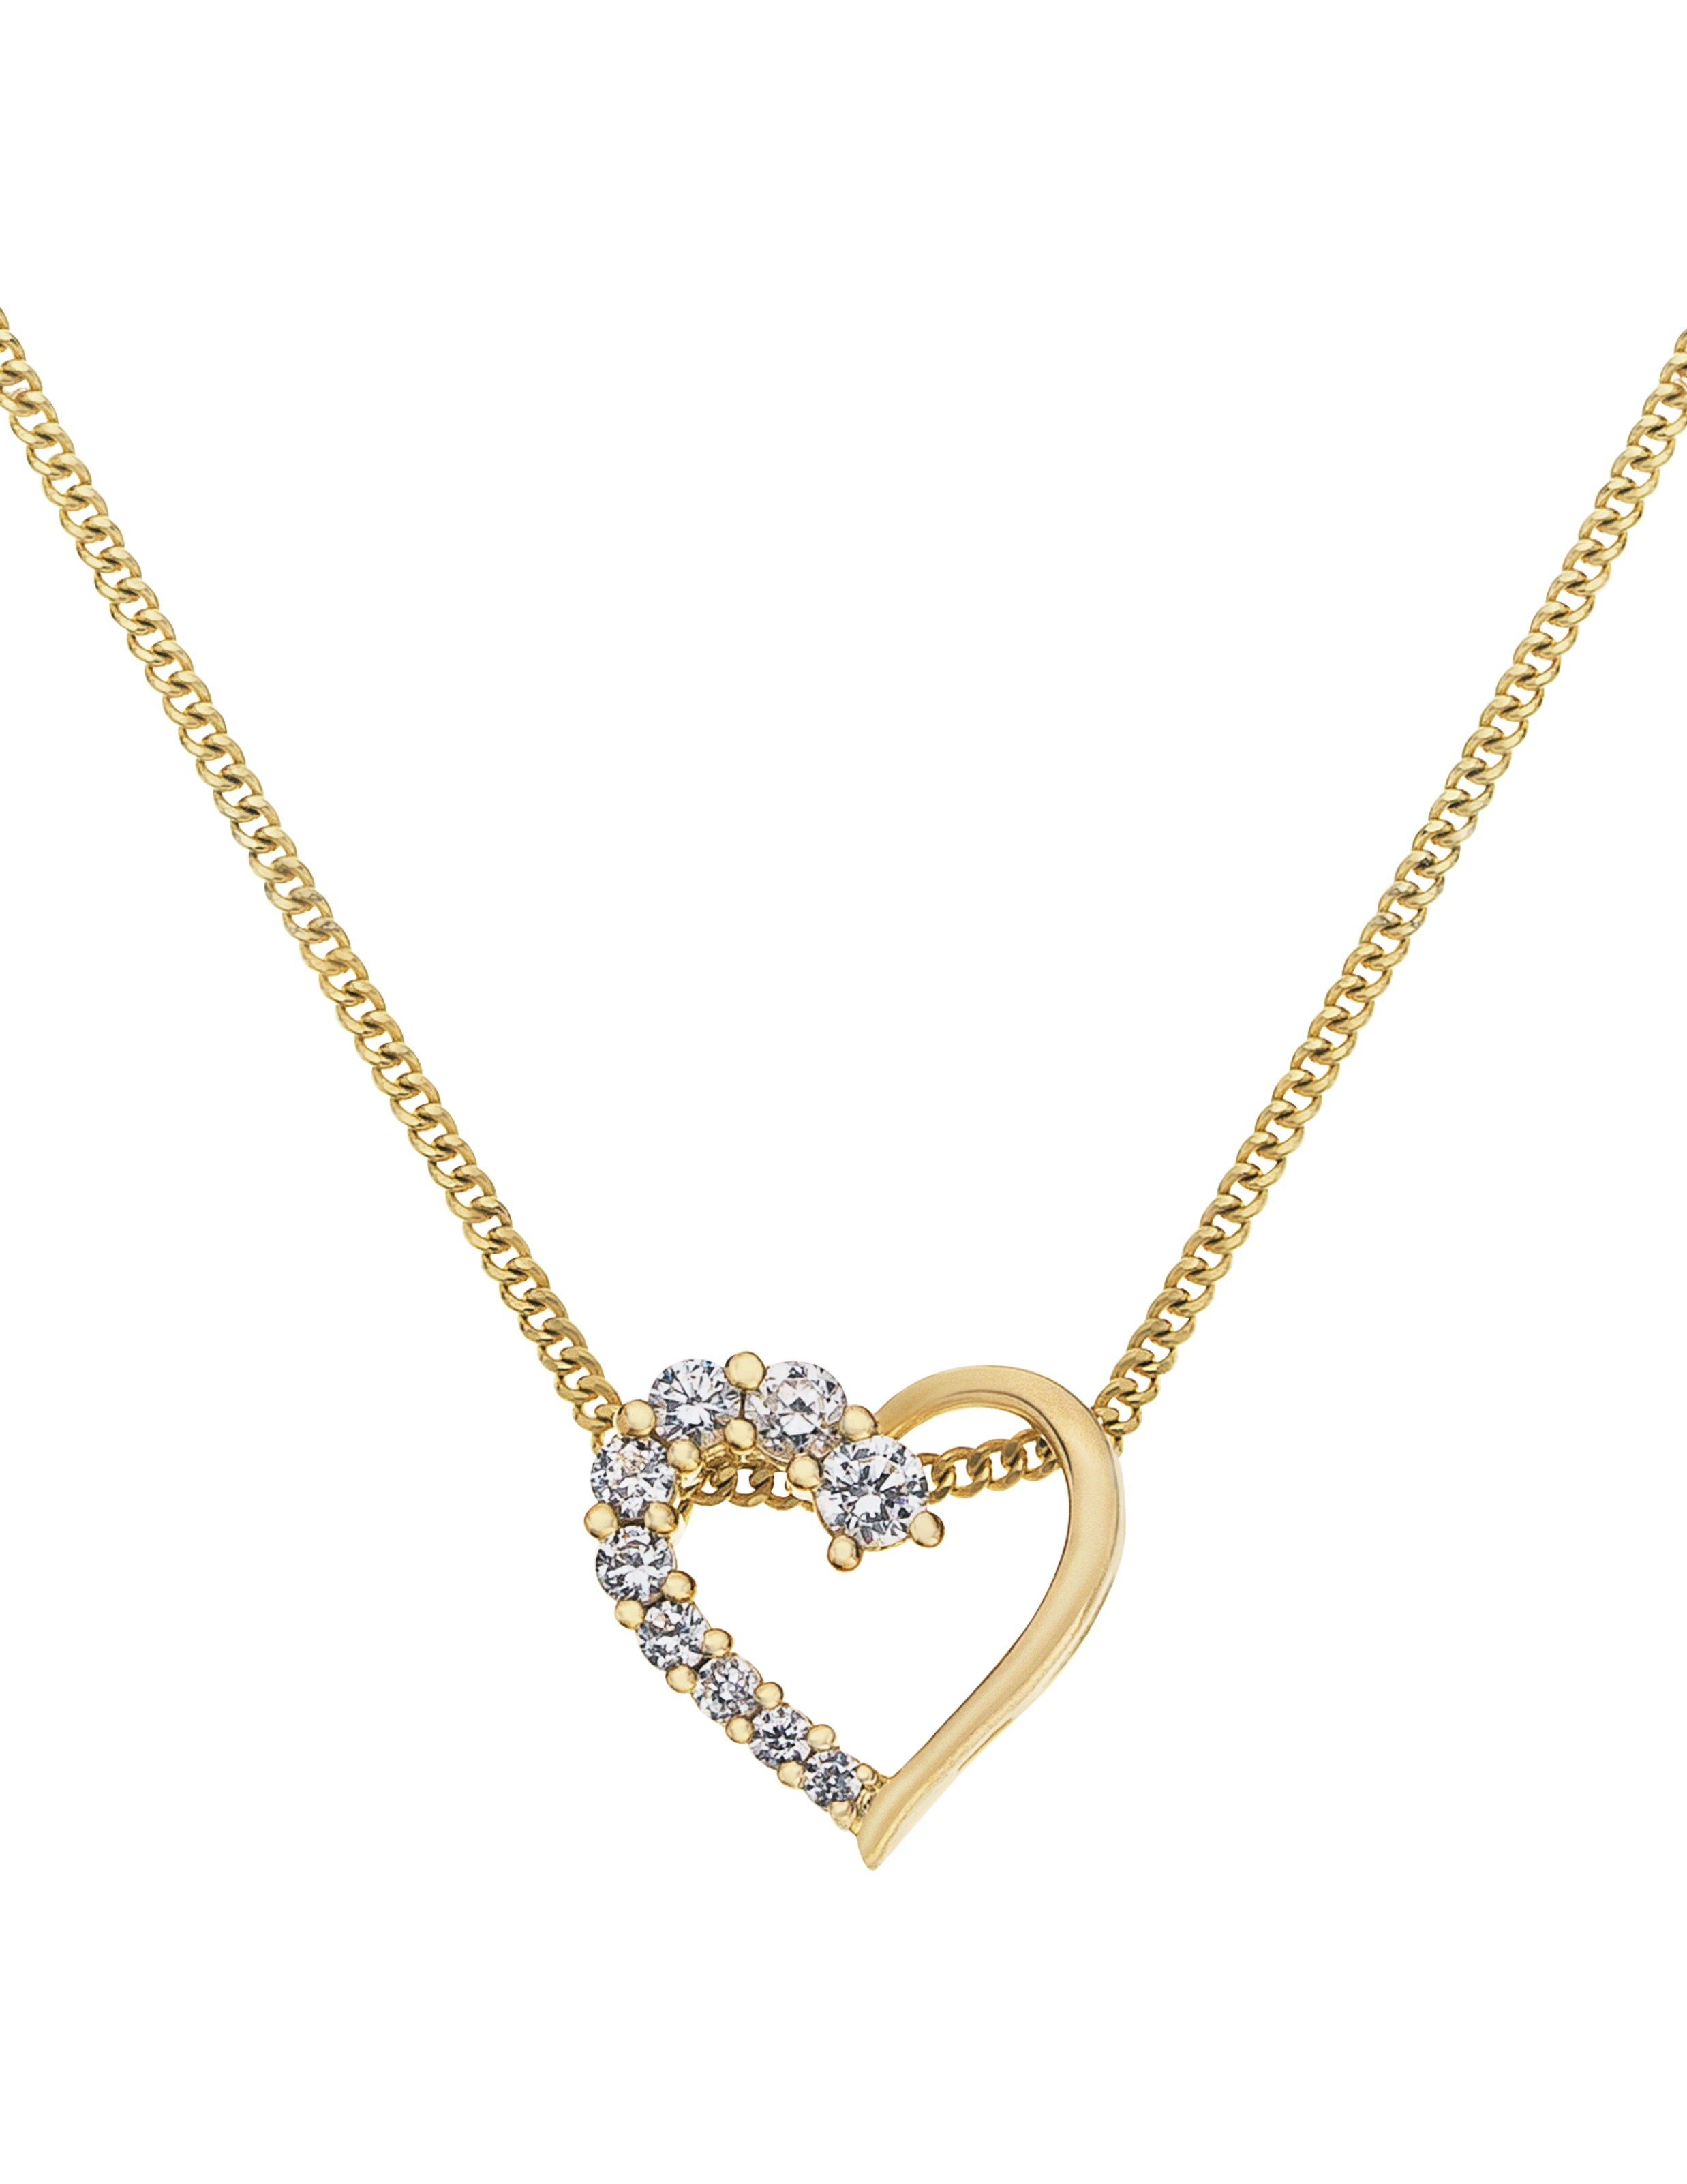 18 Carat Gold - Plated - Sterling Silver - CZ Heart Pendant.